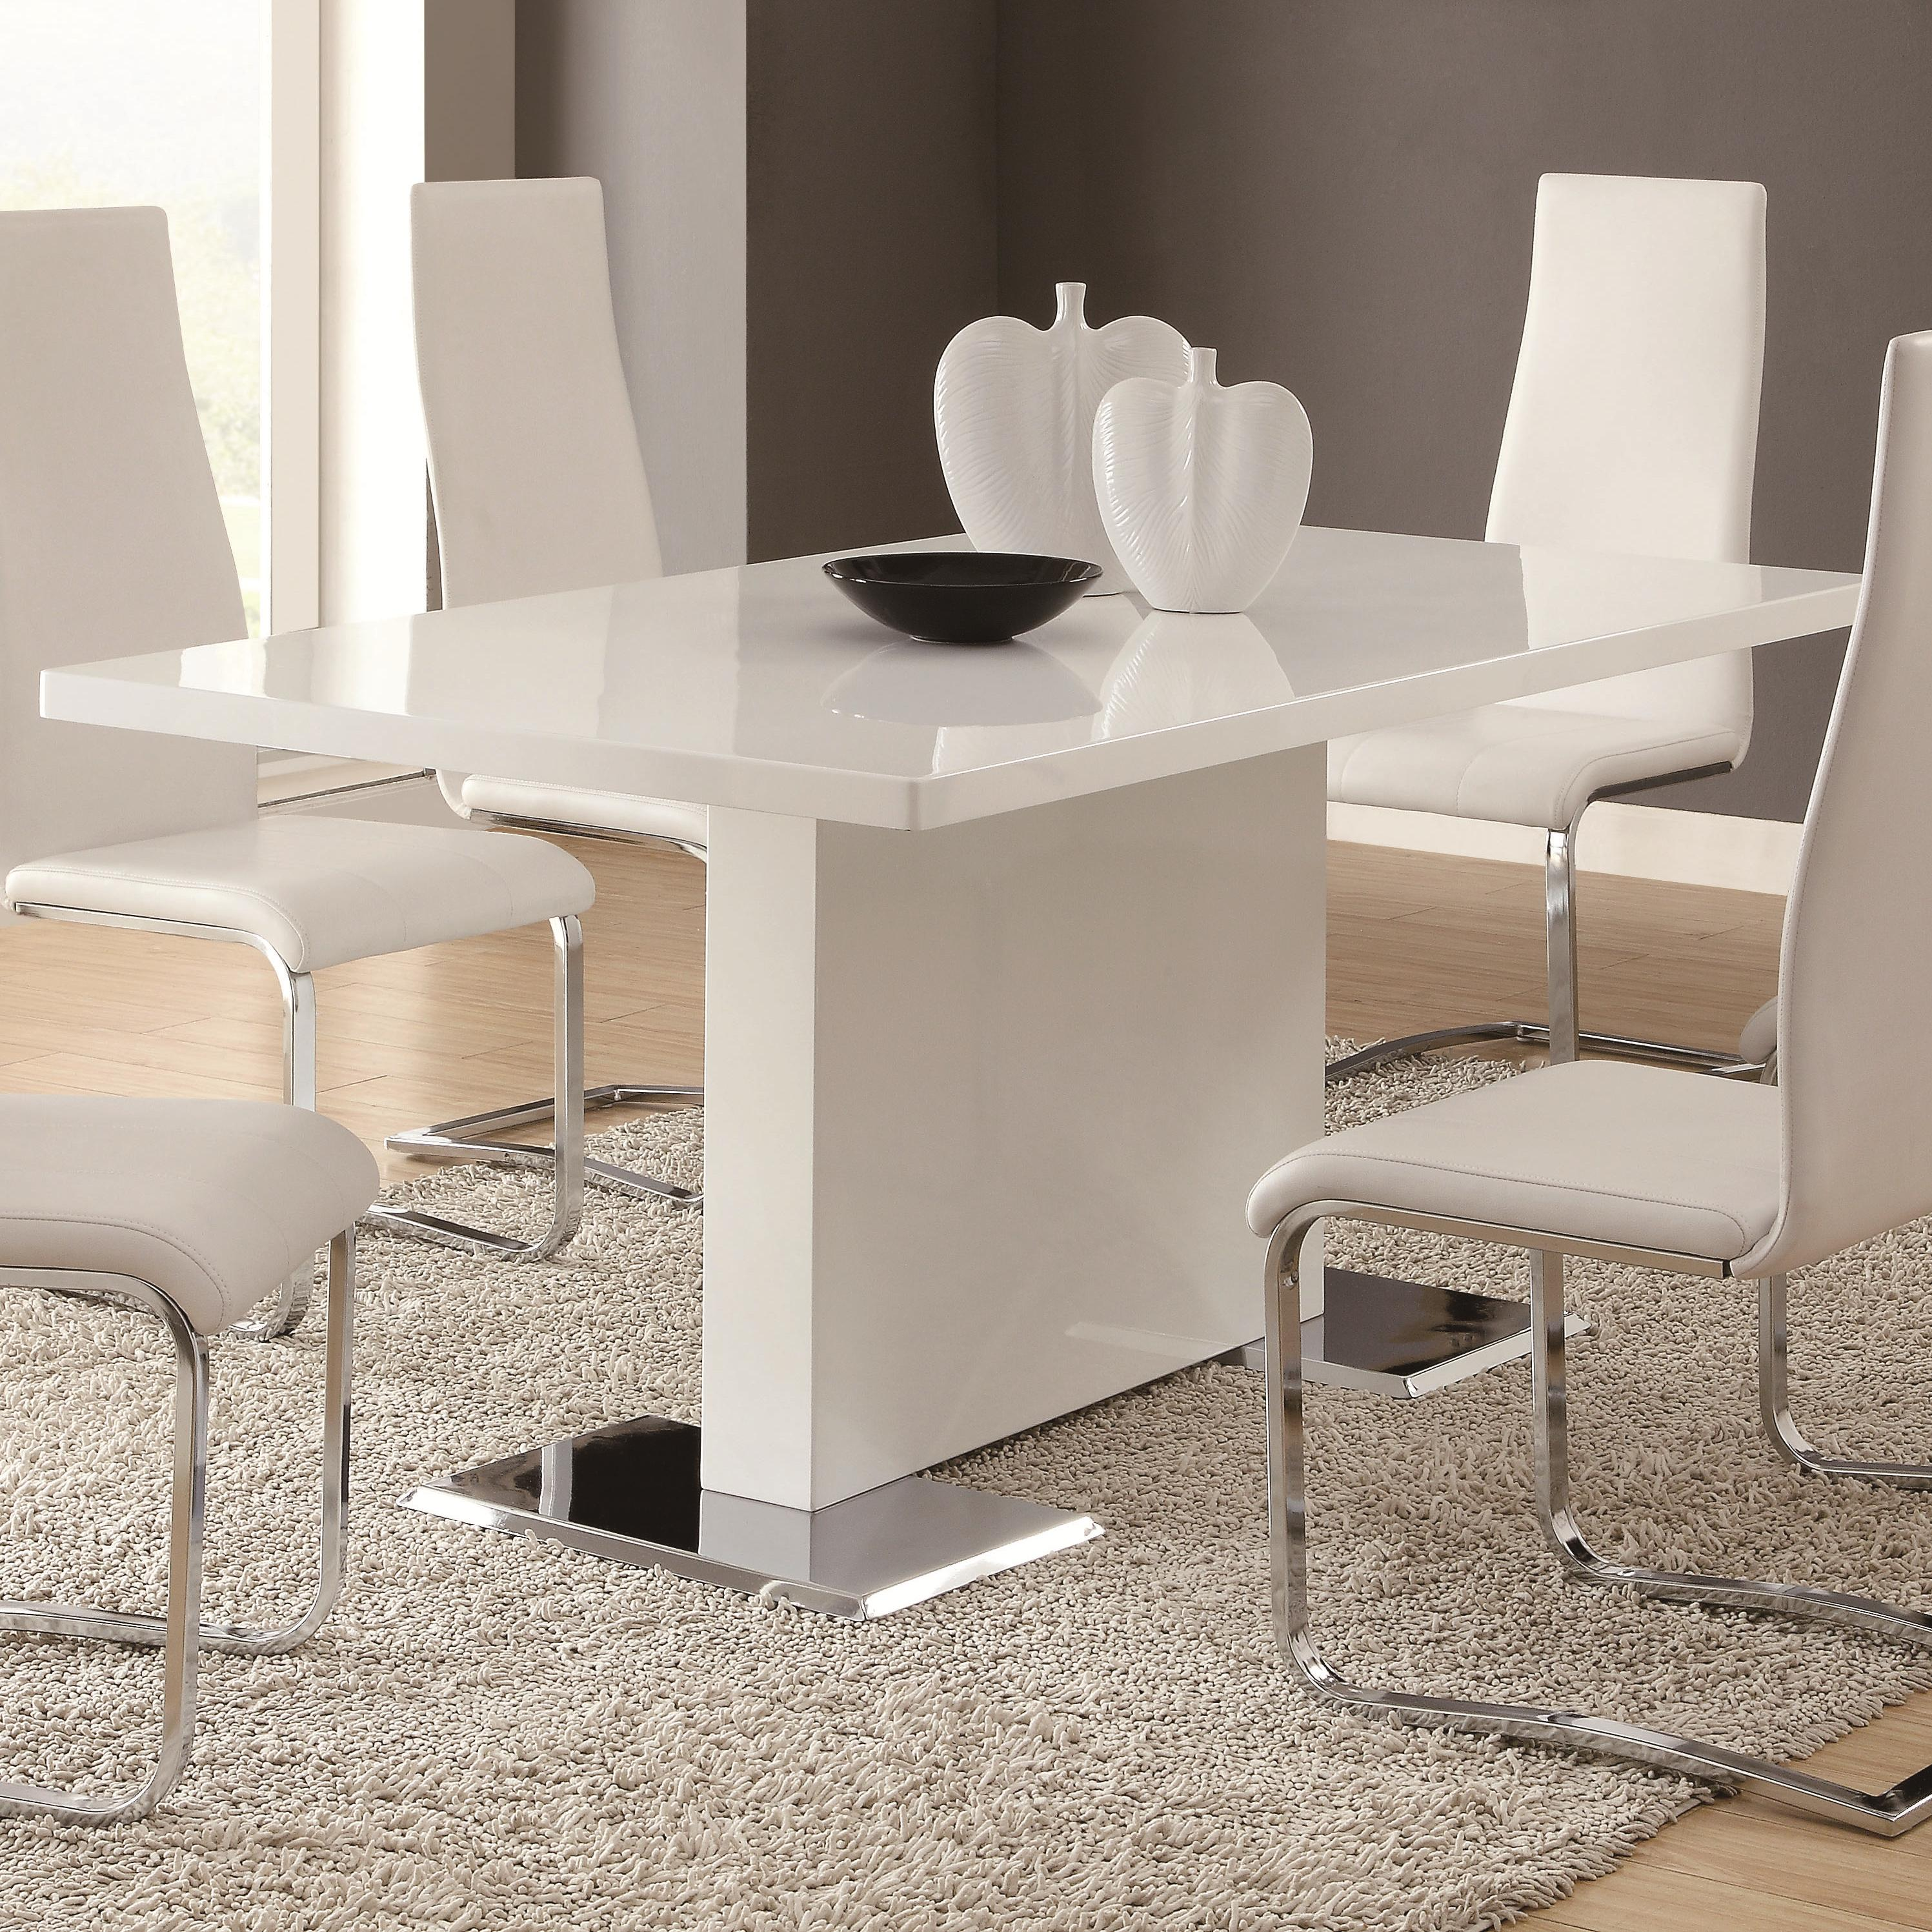 Coaster Modern Dining White Dining Table With Chrome Metal Base Standard Furniture Dining Tables